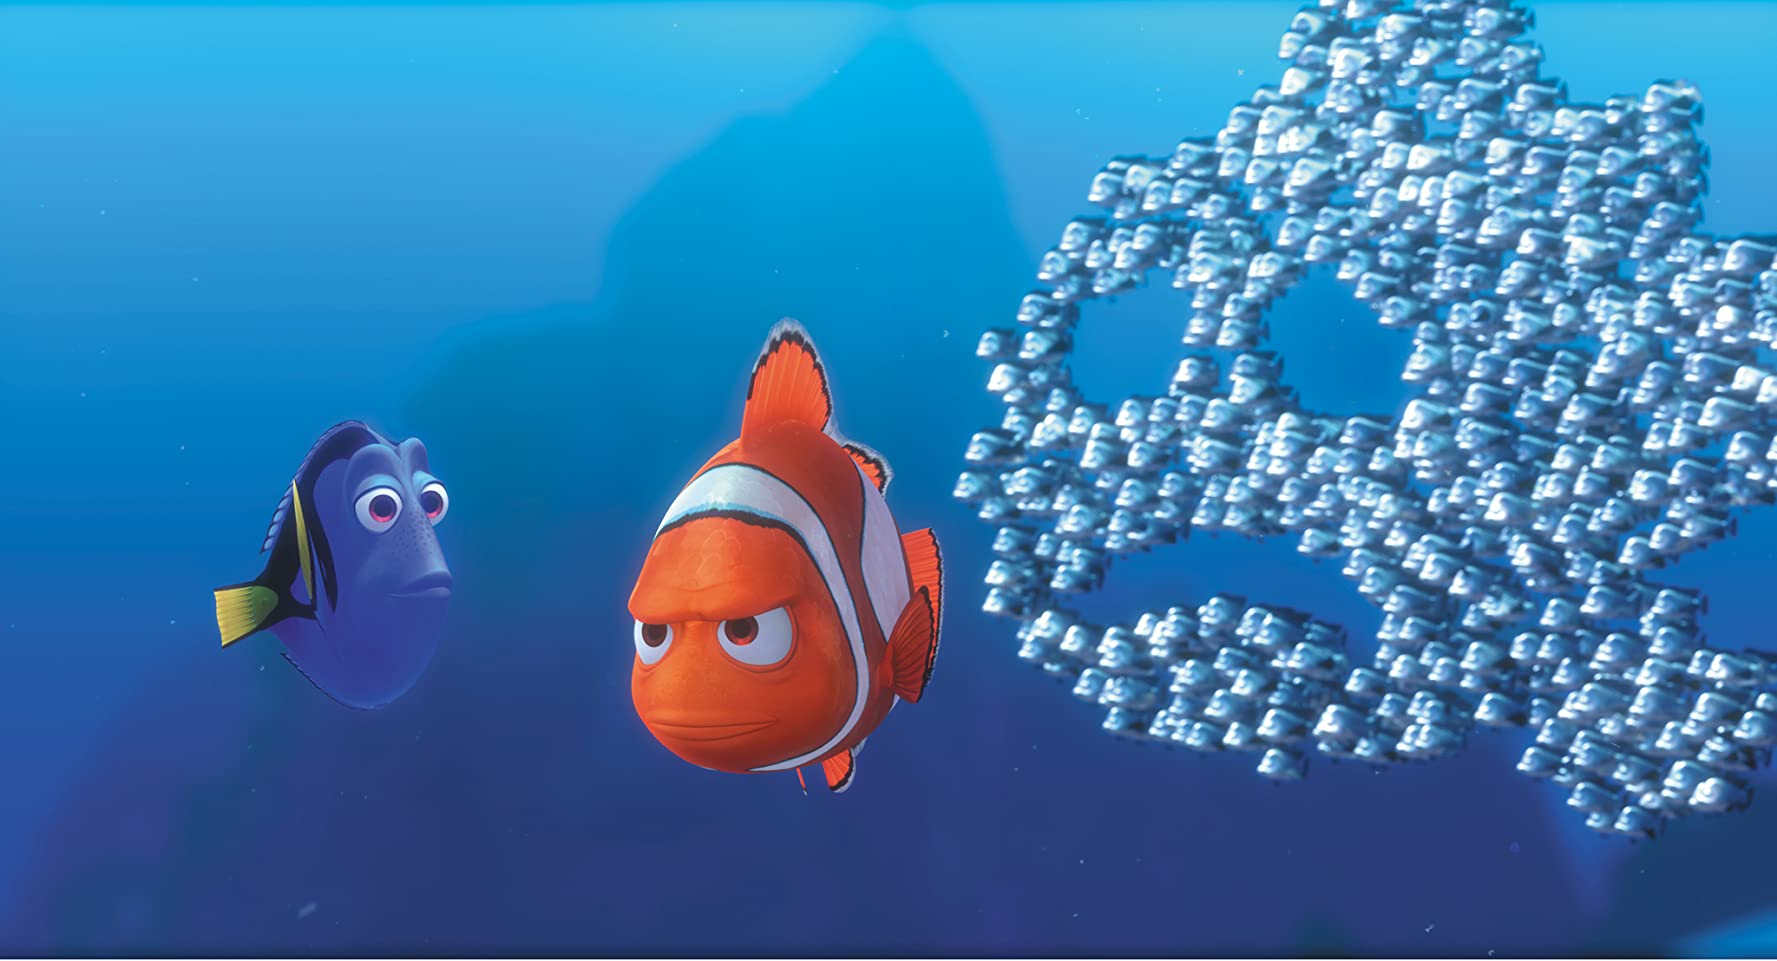 Albert Brooks, Ellen DeGeneres, and John Ratzenberger in Finding Nemo (2003)